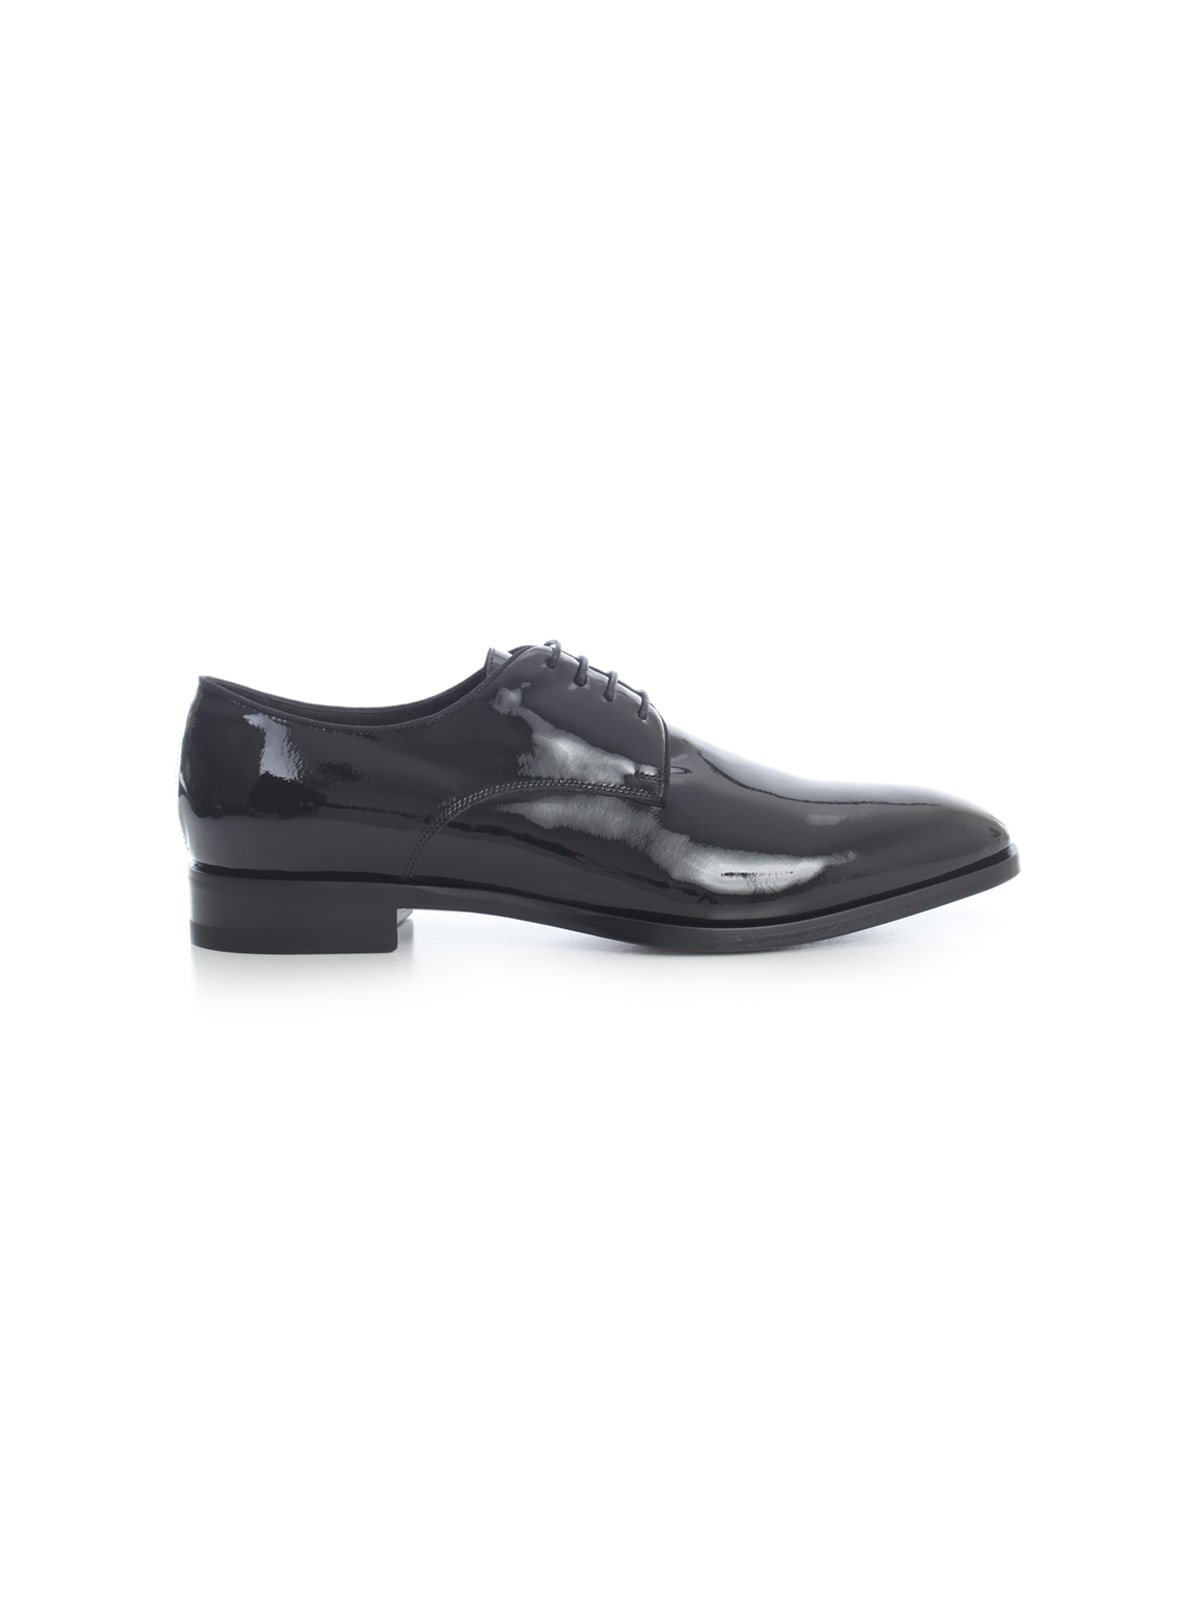 Tagliatore Loafer Patent Shoes